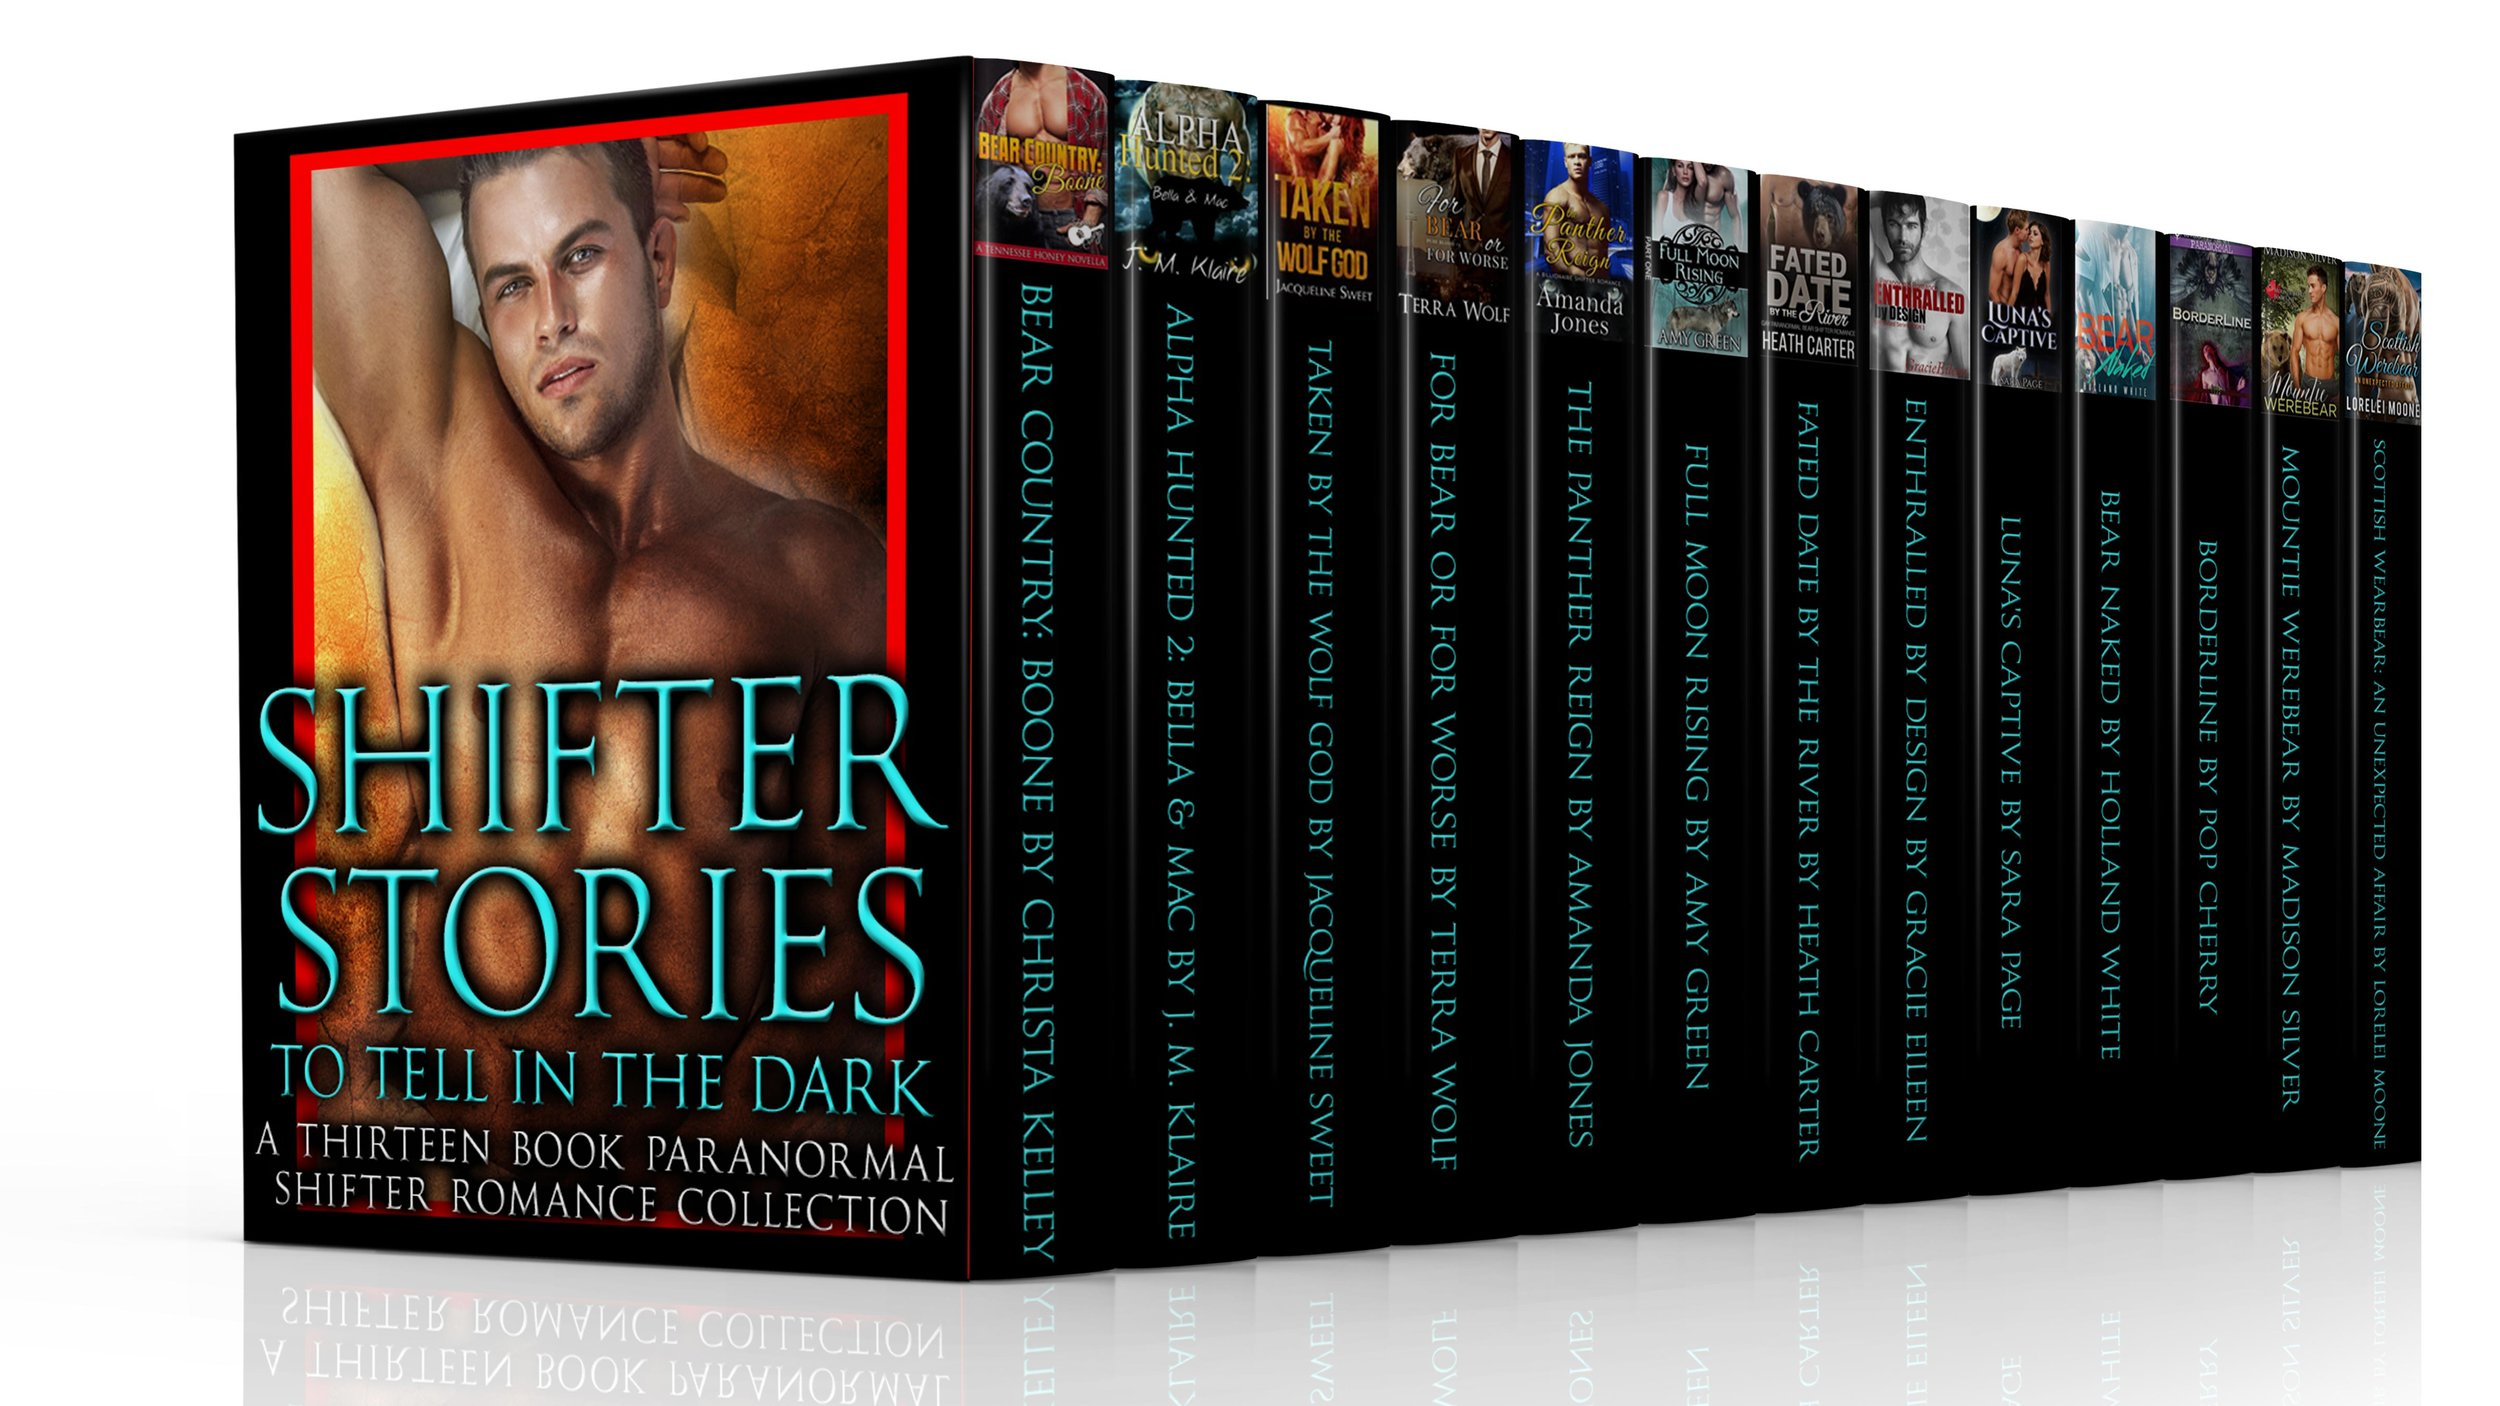 Shifter-stories-to-tell-in-the-dark-draft-2.jpg